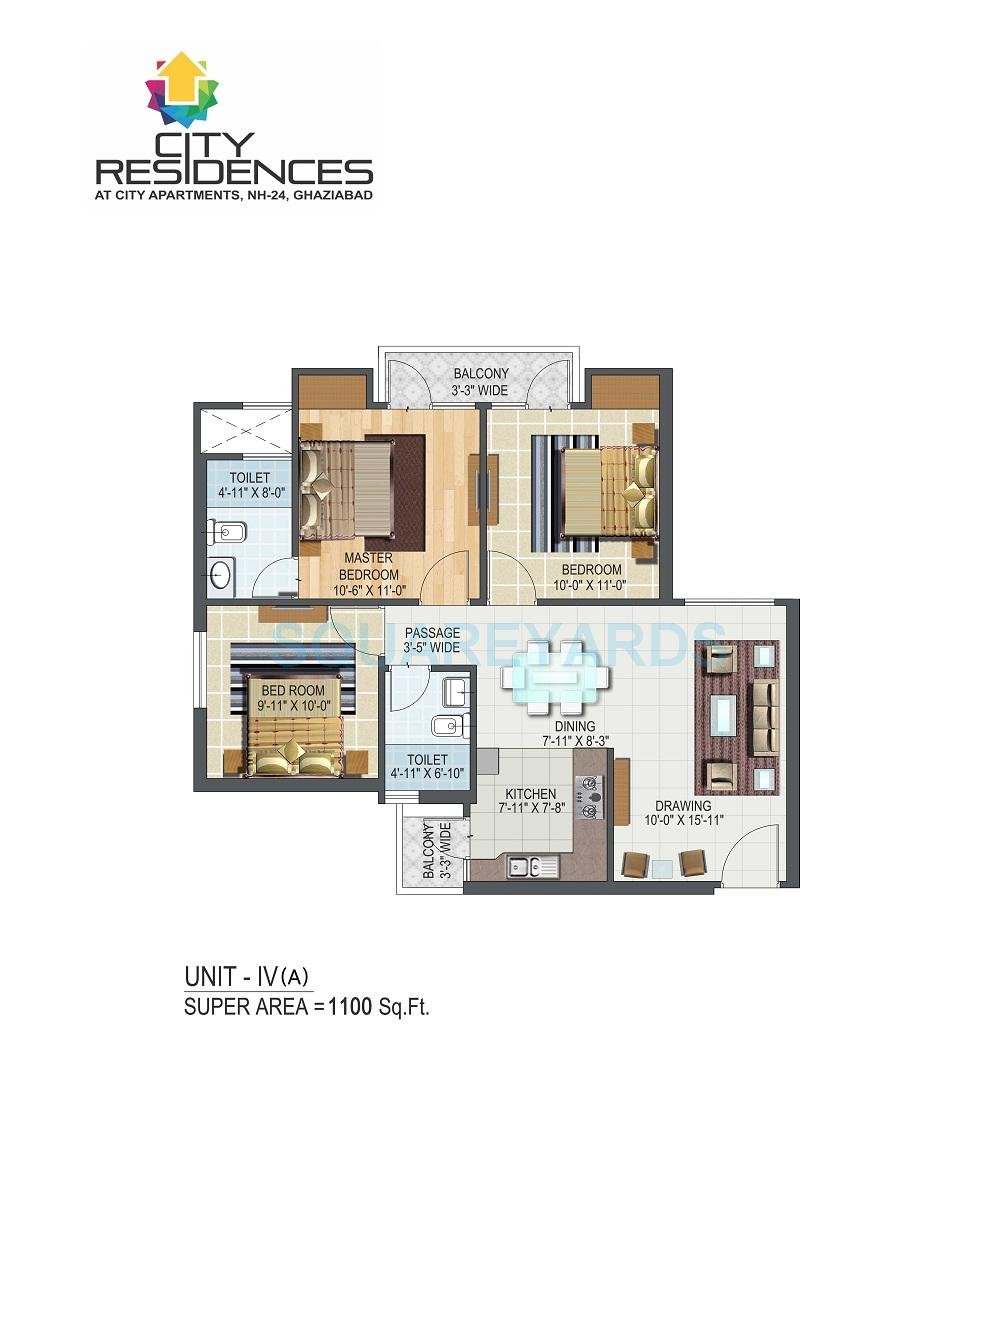 Aditya city apartments in dasna ghaziabad project for 1100 sq ft apartment floor plan